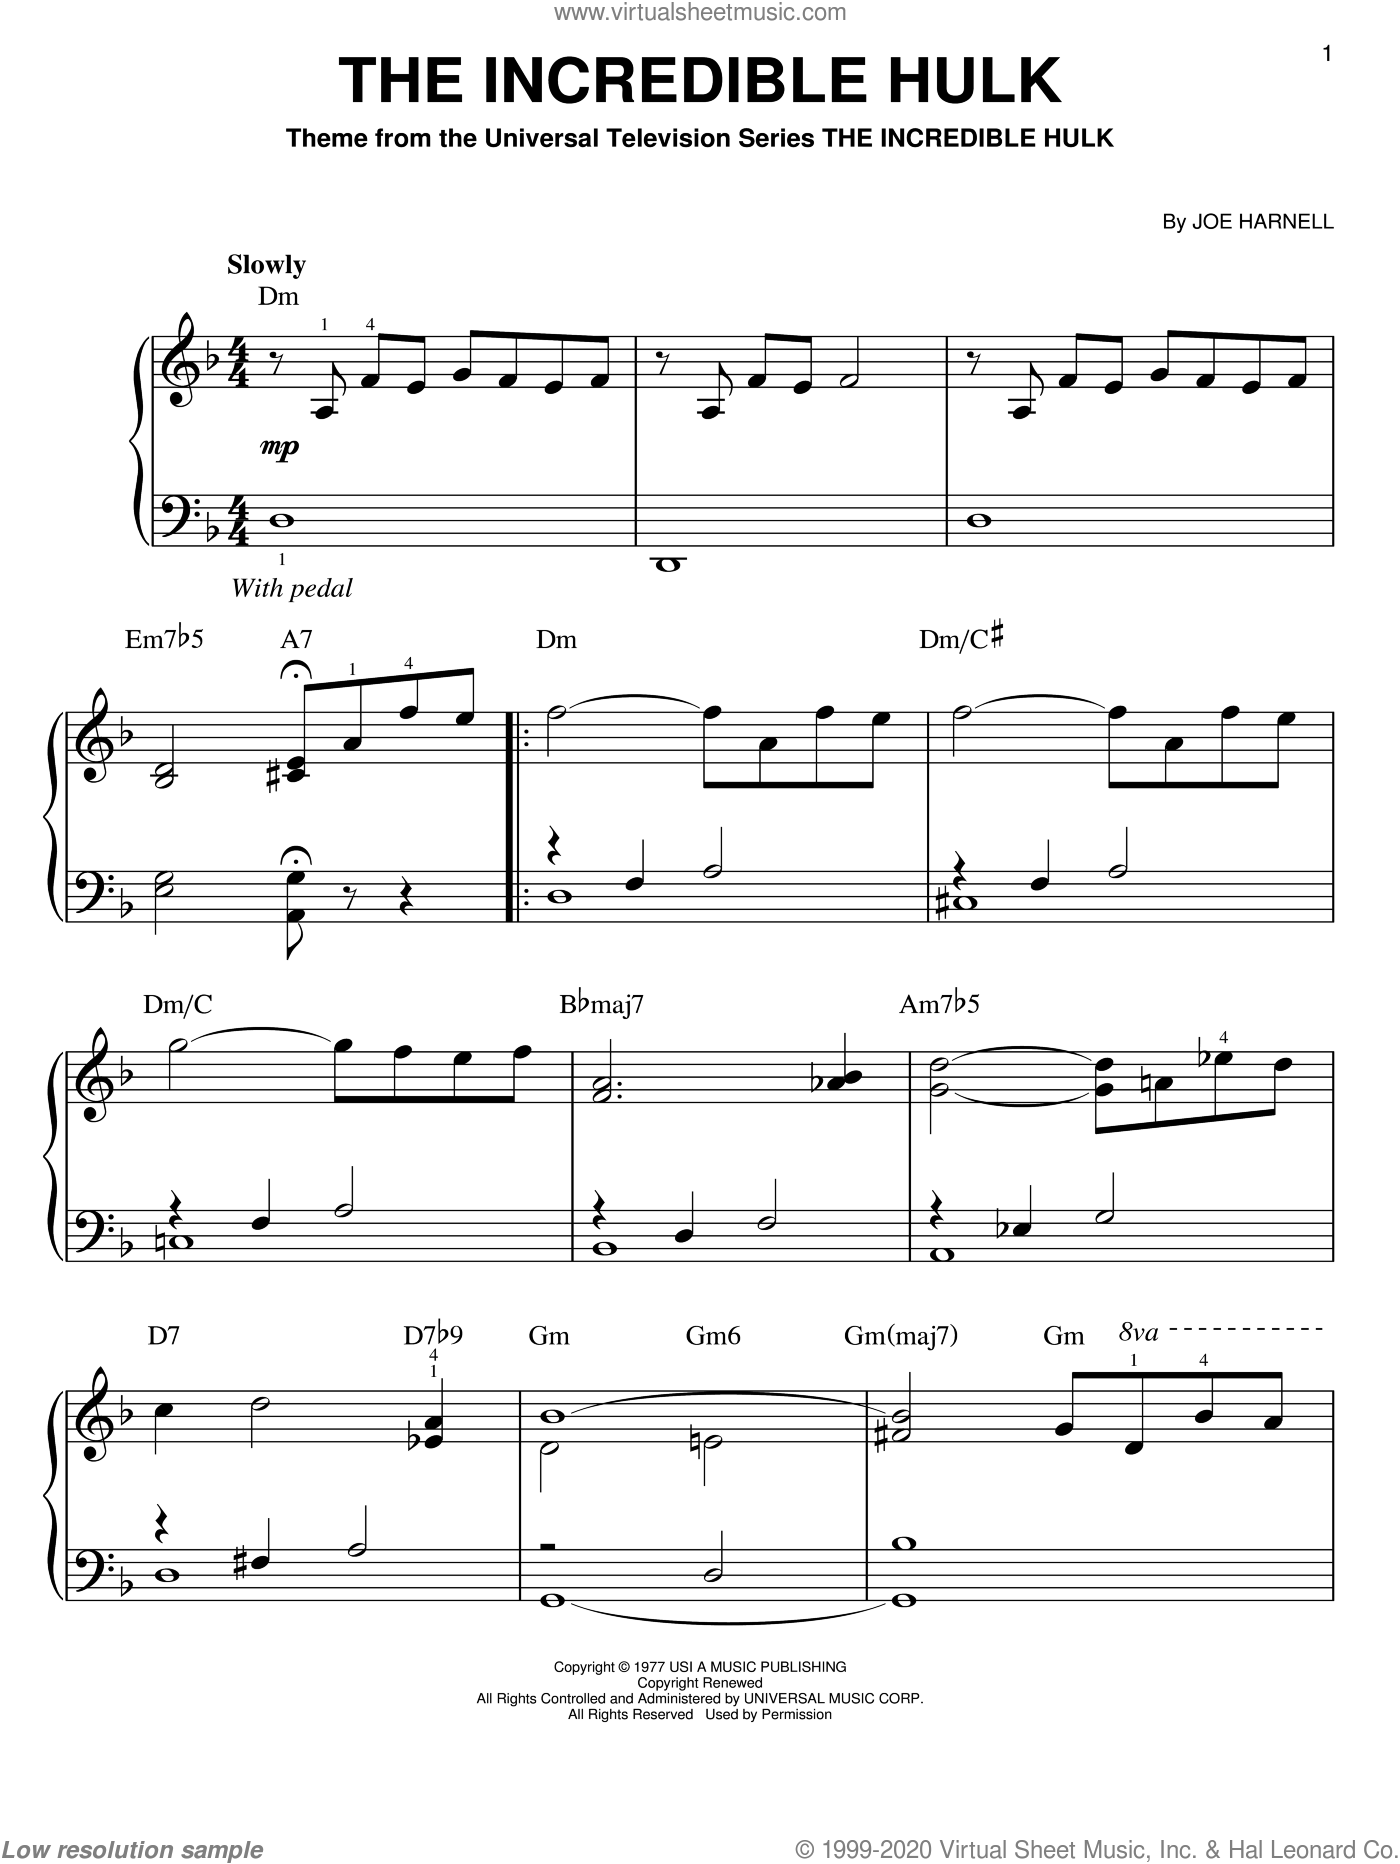 The Incredible Hulk sheet music for piano solo by Joe Harnell. Score Image Preview.